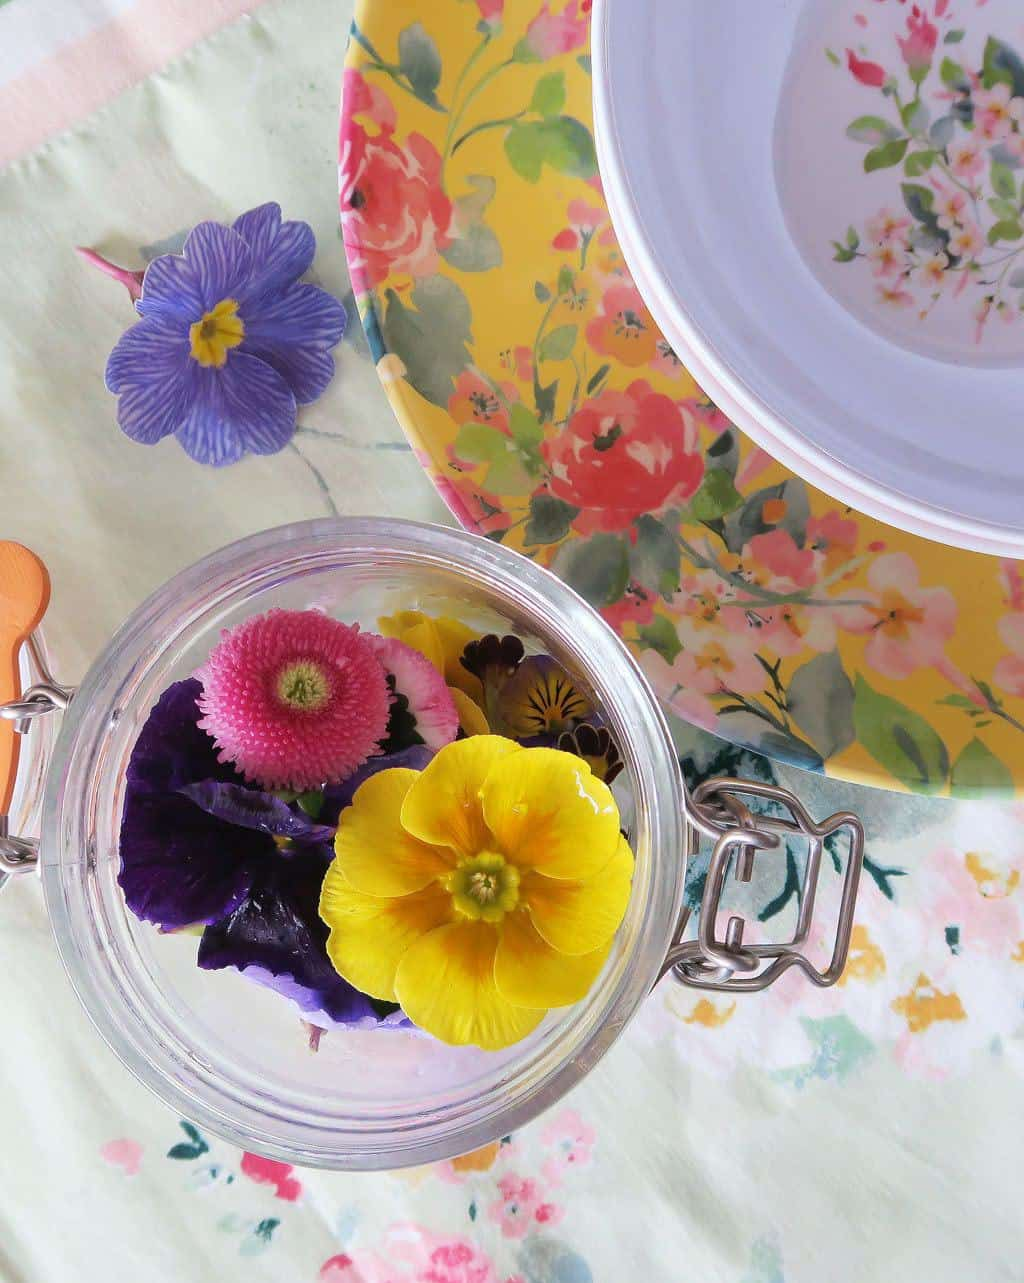 Edible flowers from Delicately Edible plus Spring Florals melamine tableware from Laura Ashley